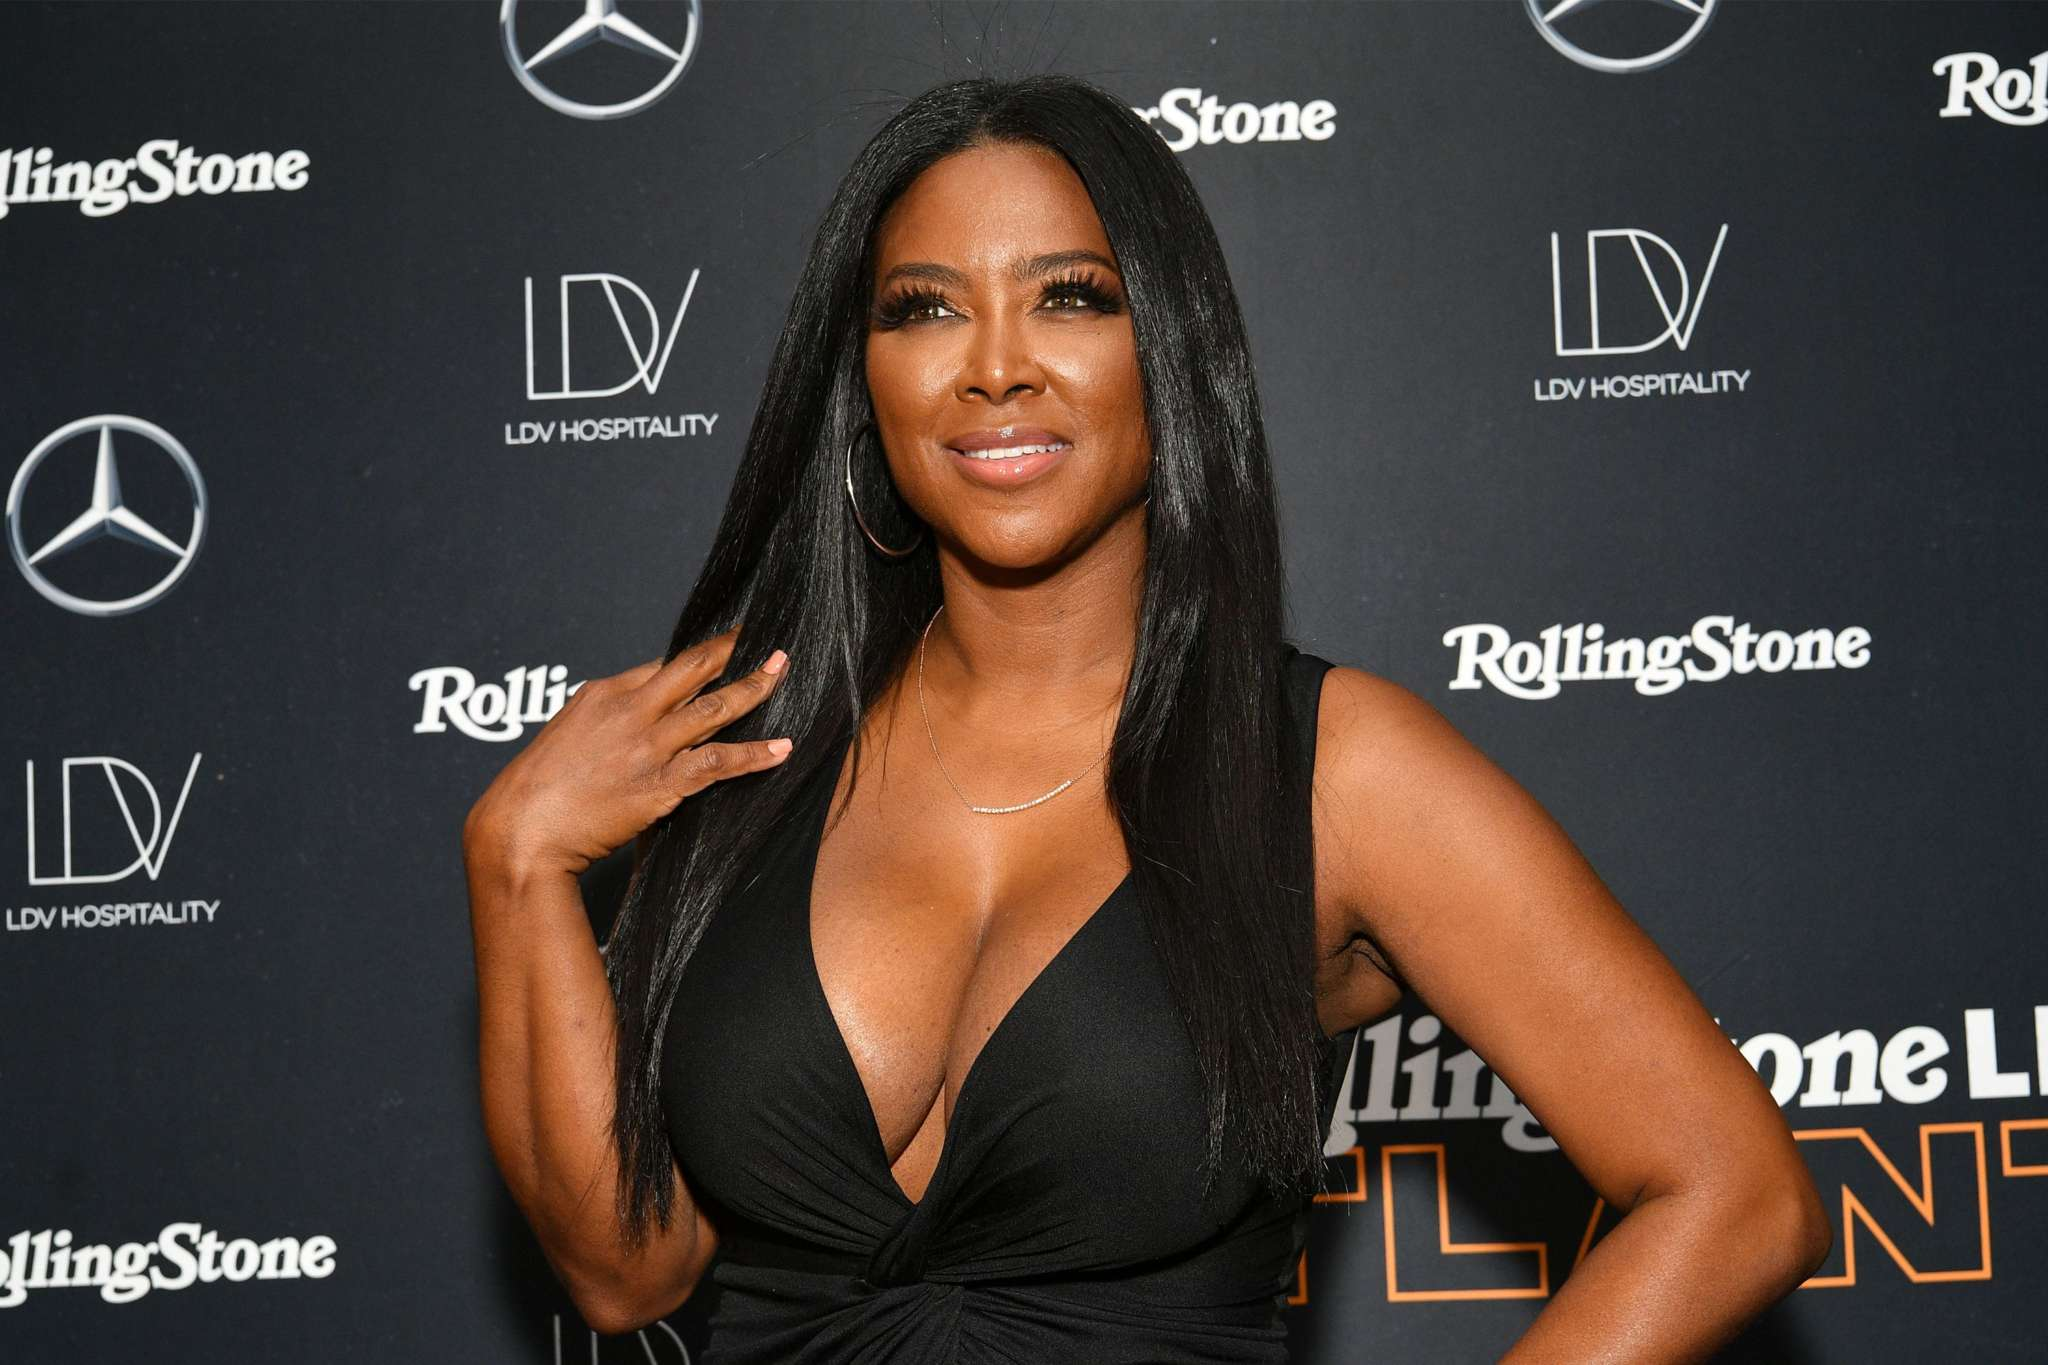 Kenya Moore Says She's Always On Top – Check Out Her Fabulous Photo That Has Fans Saying She's With Marc Daly